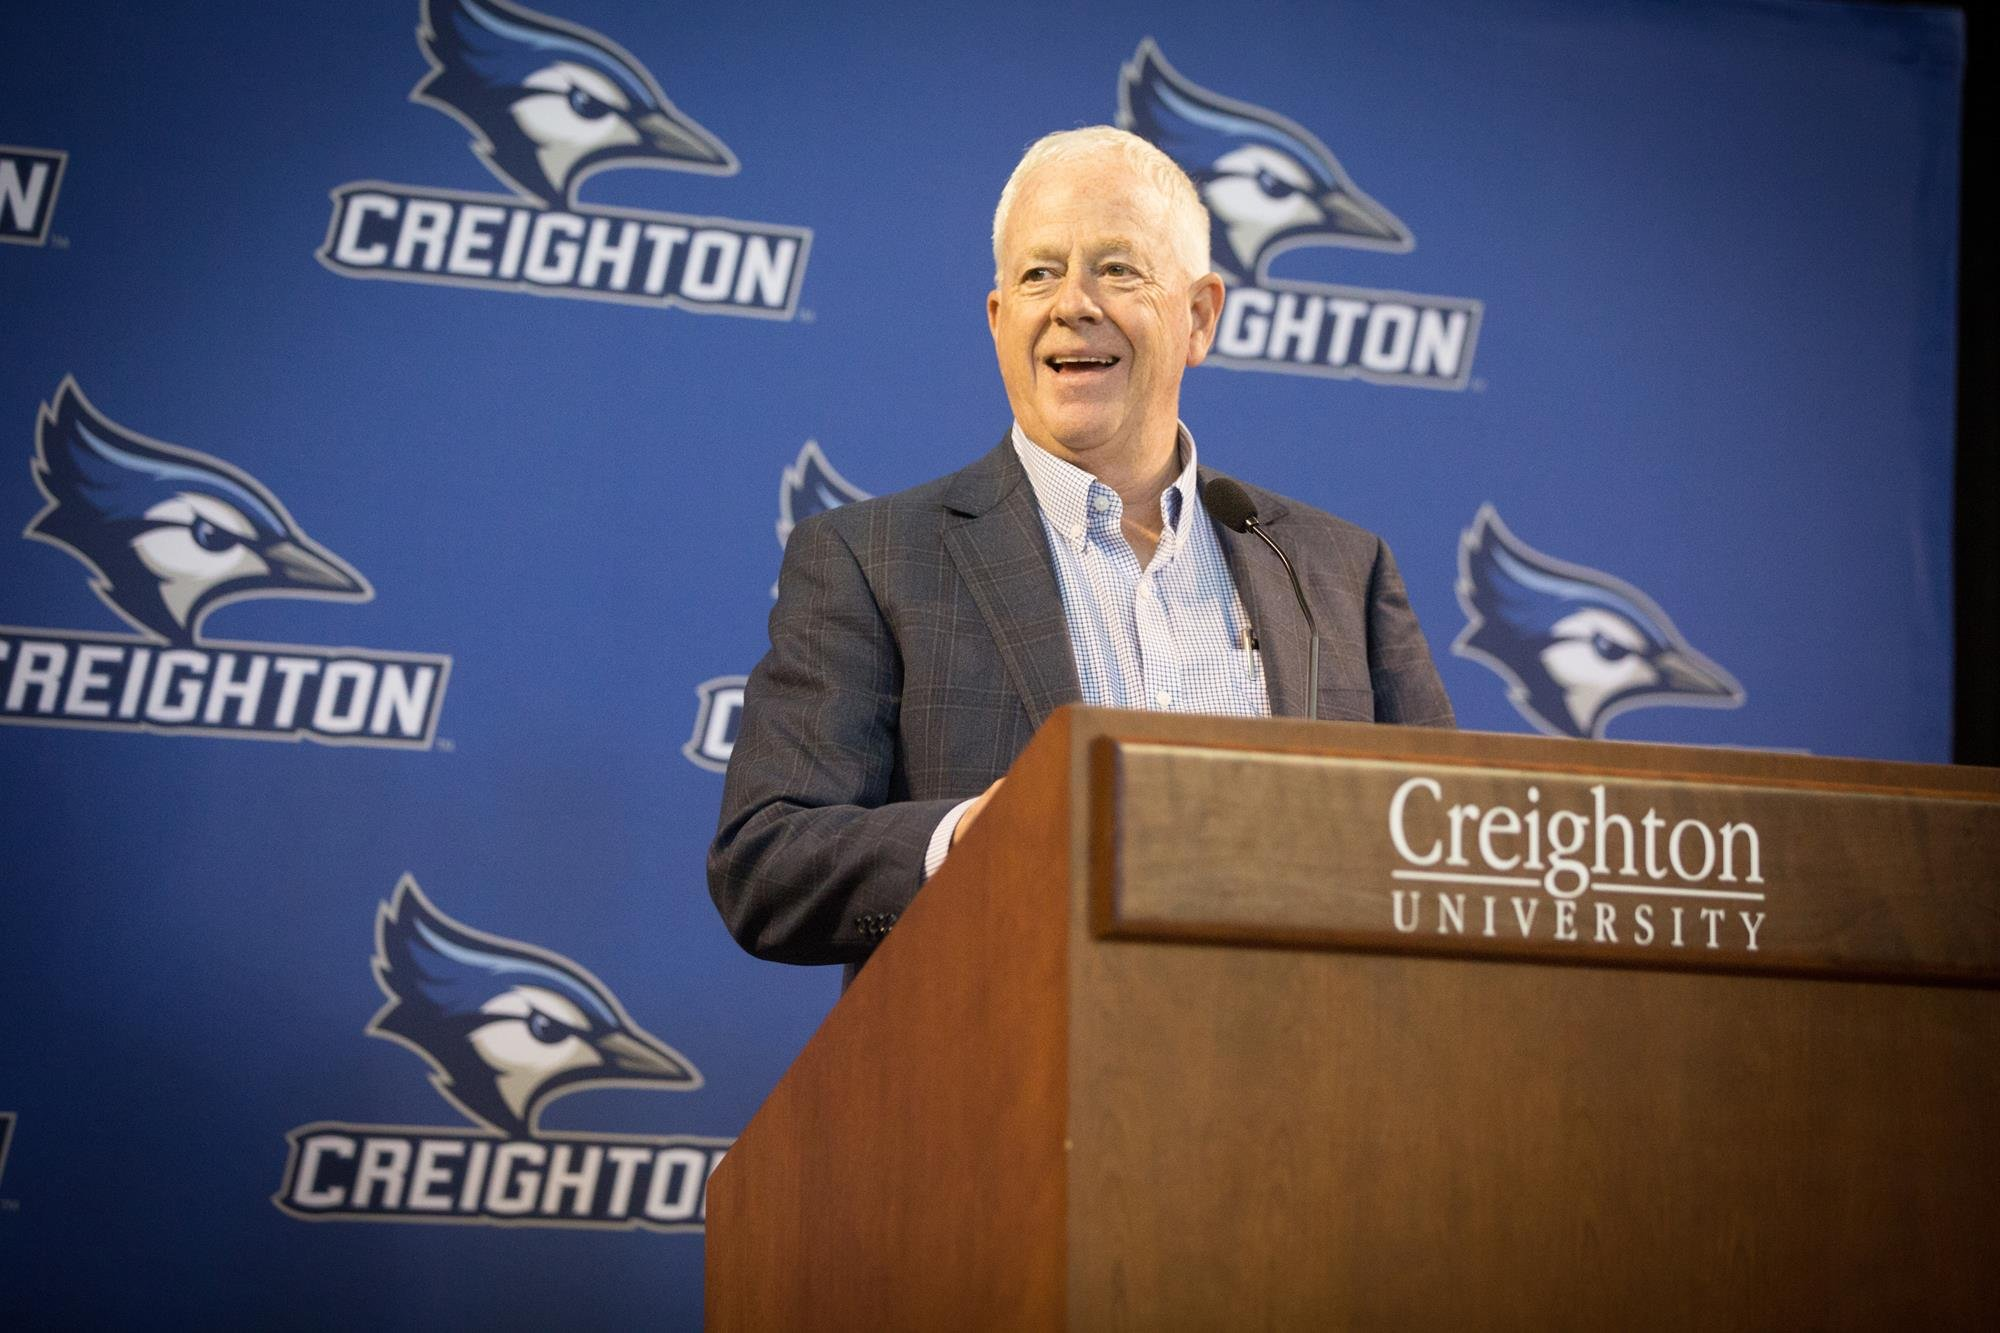 Creighton AD officially announces retirement